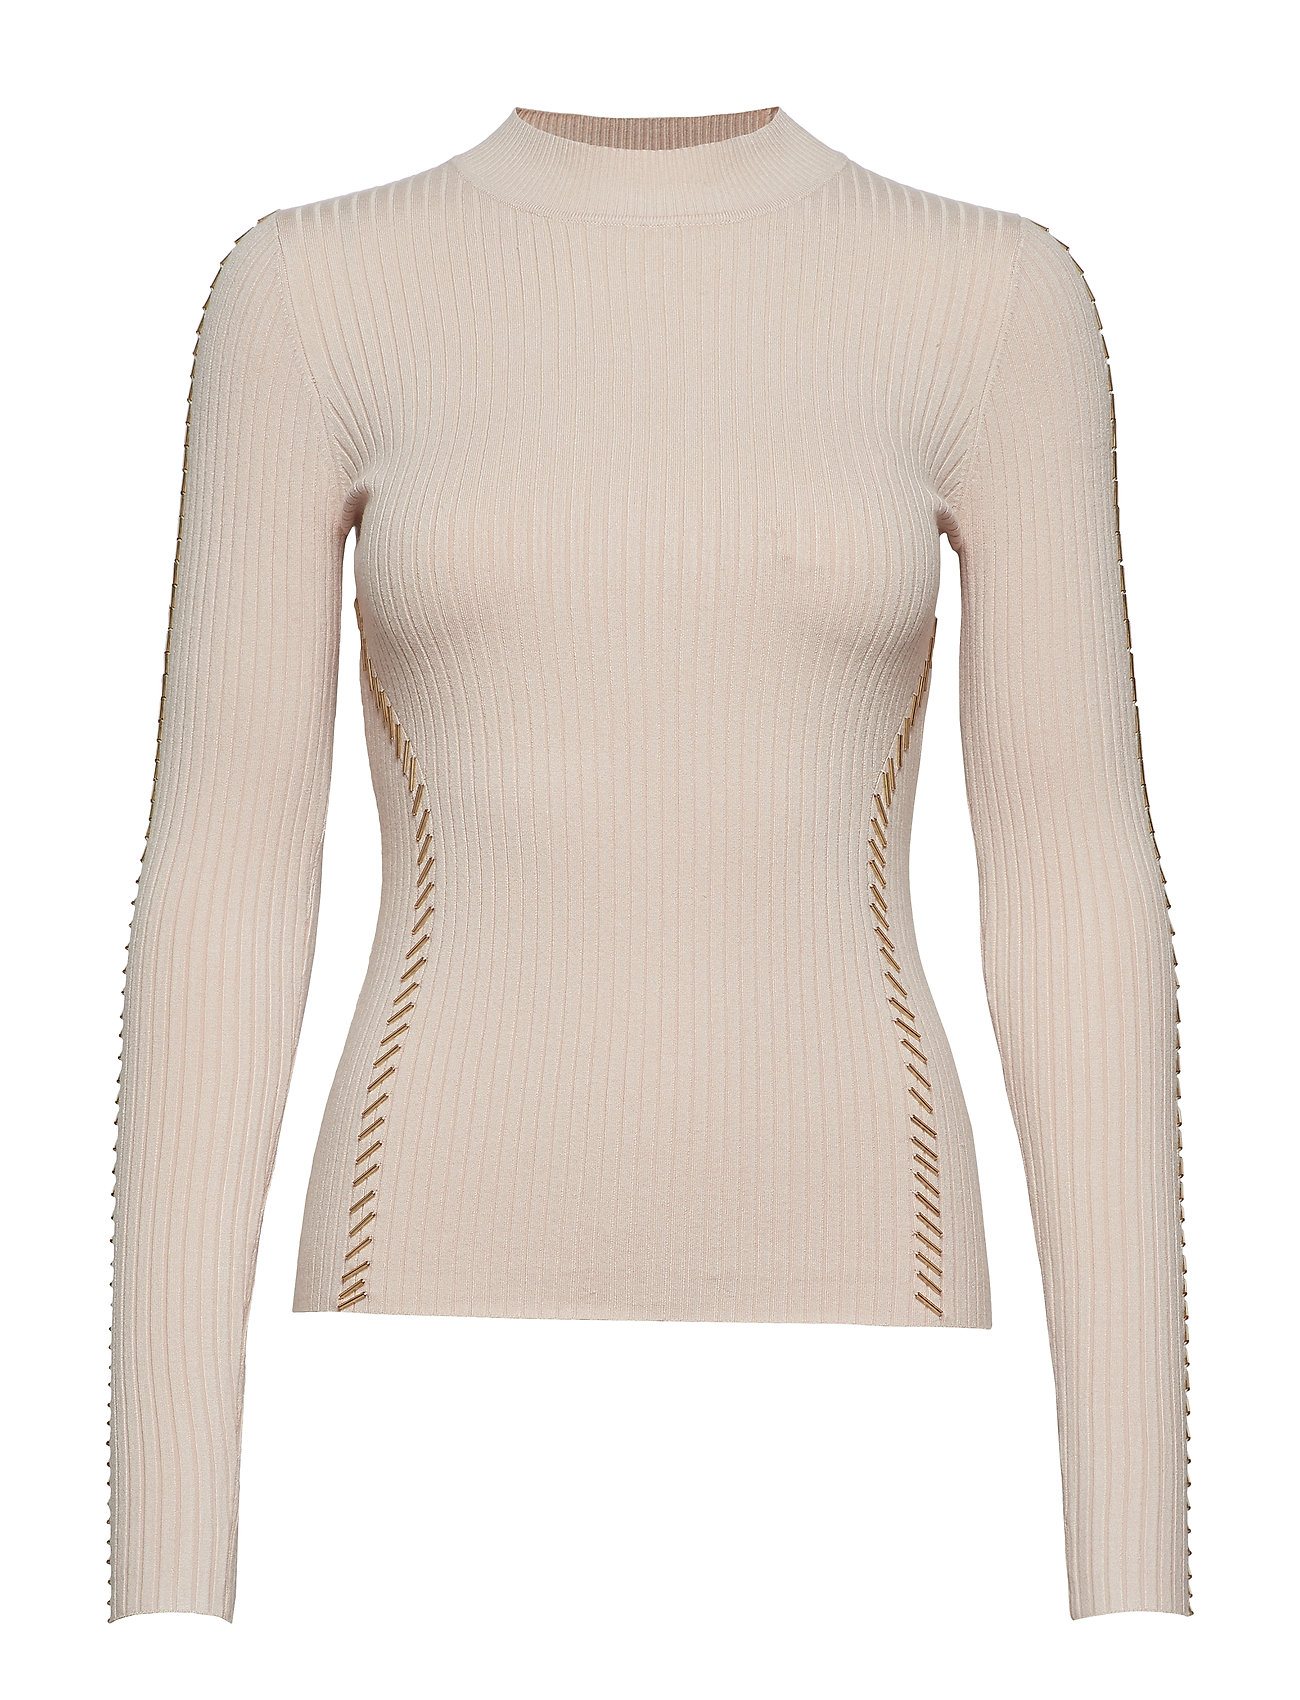 Marciano by GUESS TIFFANI SWEATER TOP - SERENE CREAM